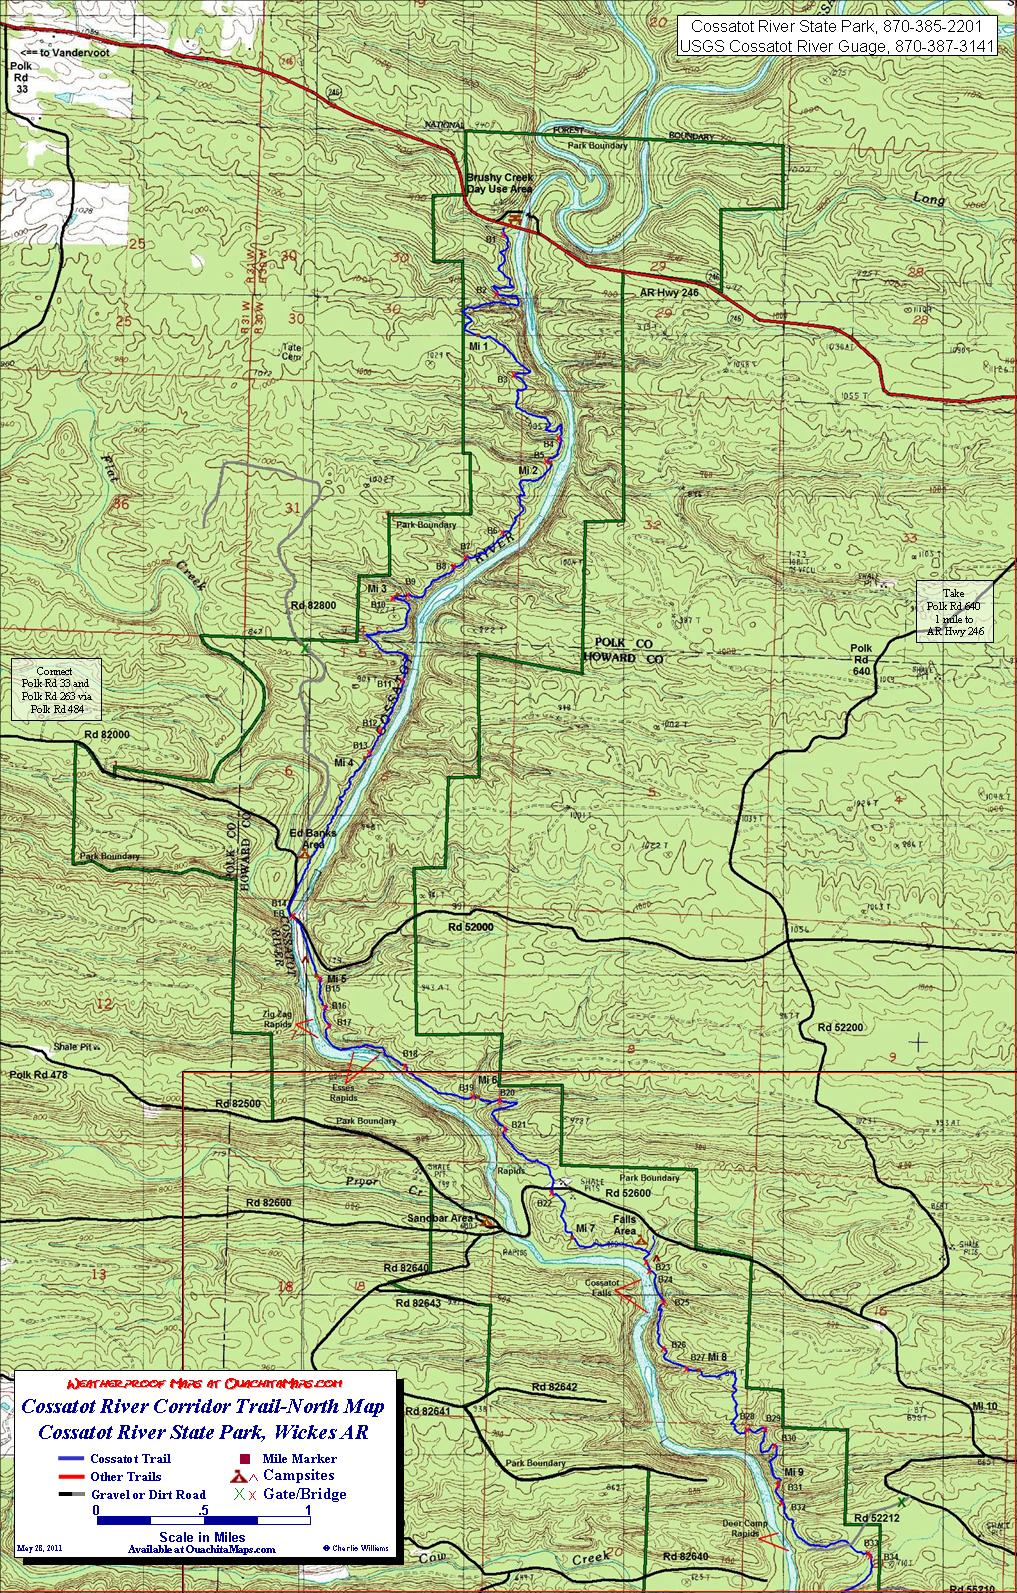 Devils Den Arkansas Map.Cossatot River Corridor Trail Wickes Arkansas Free Detailed Topo Map